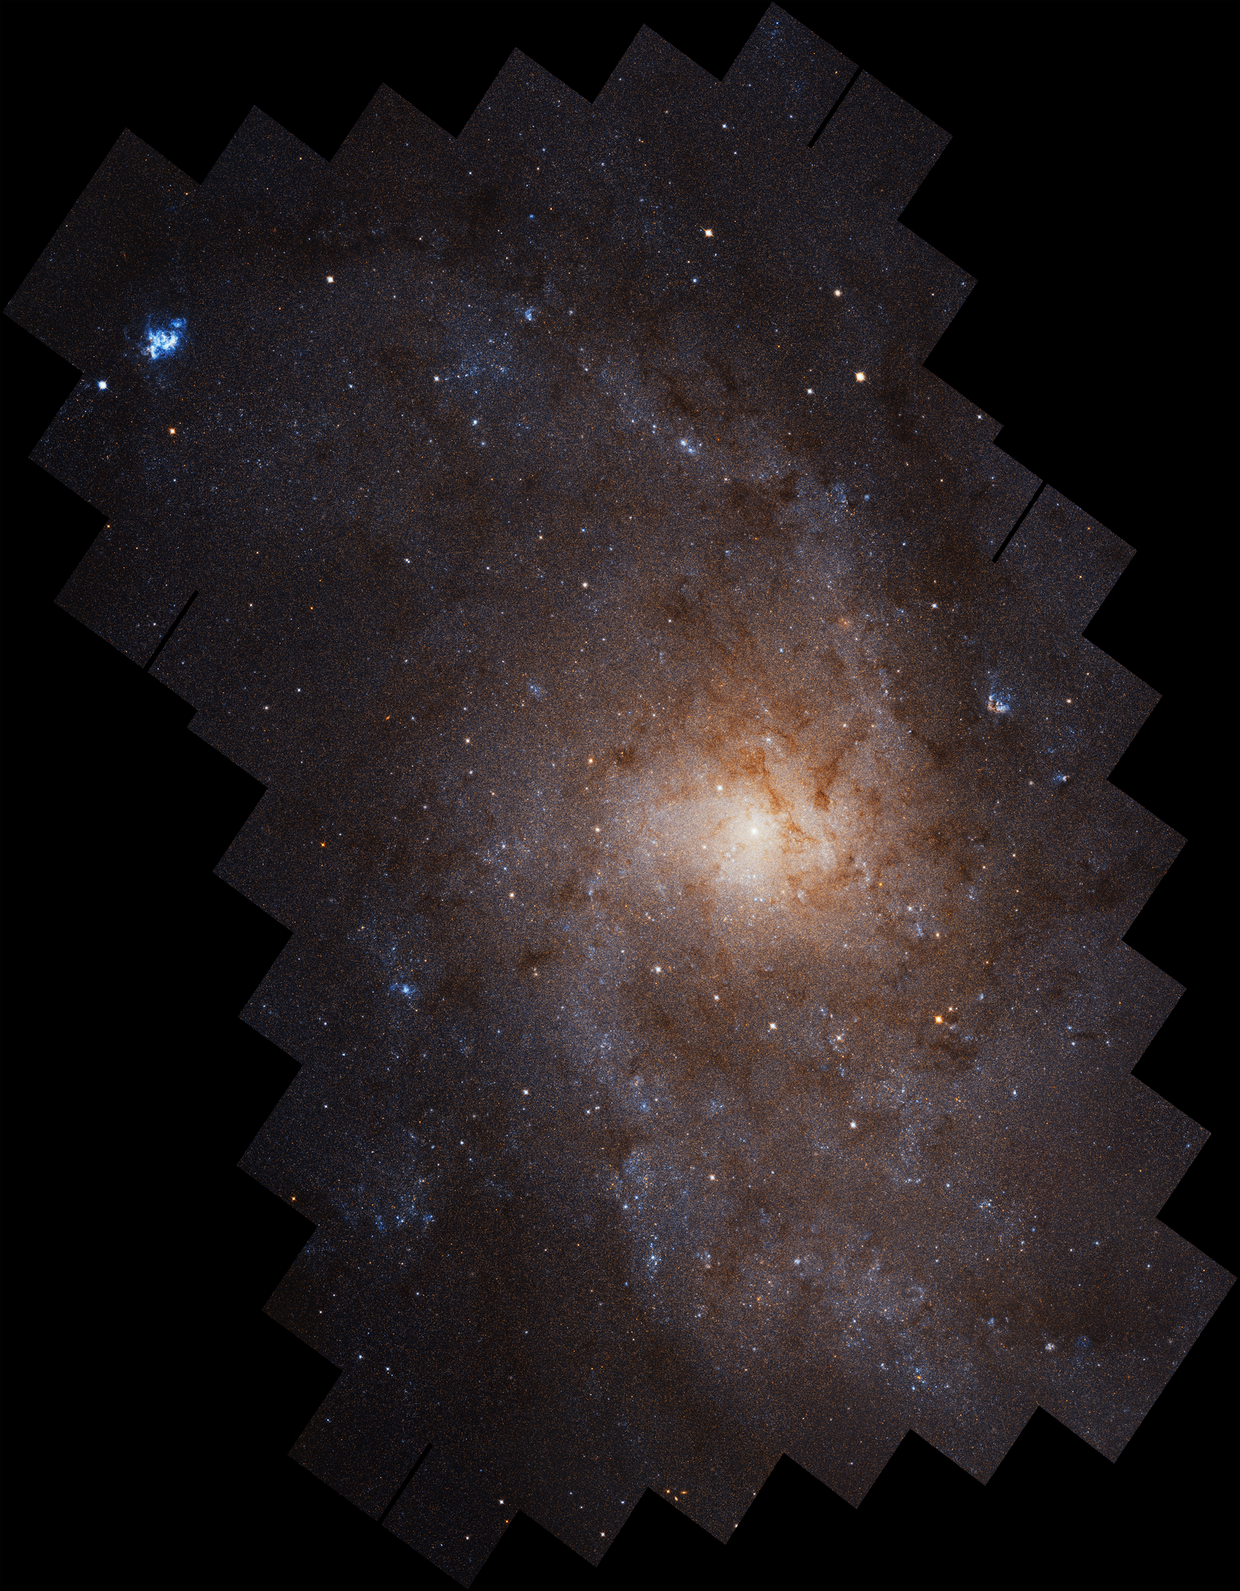 Hubble Telescope captures most detailed image ever of nearby galaxy